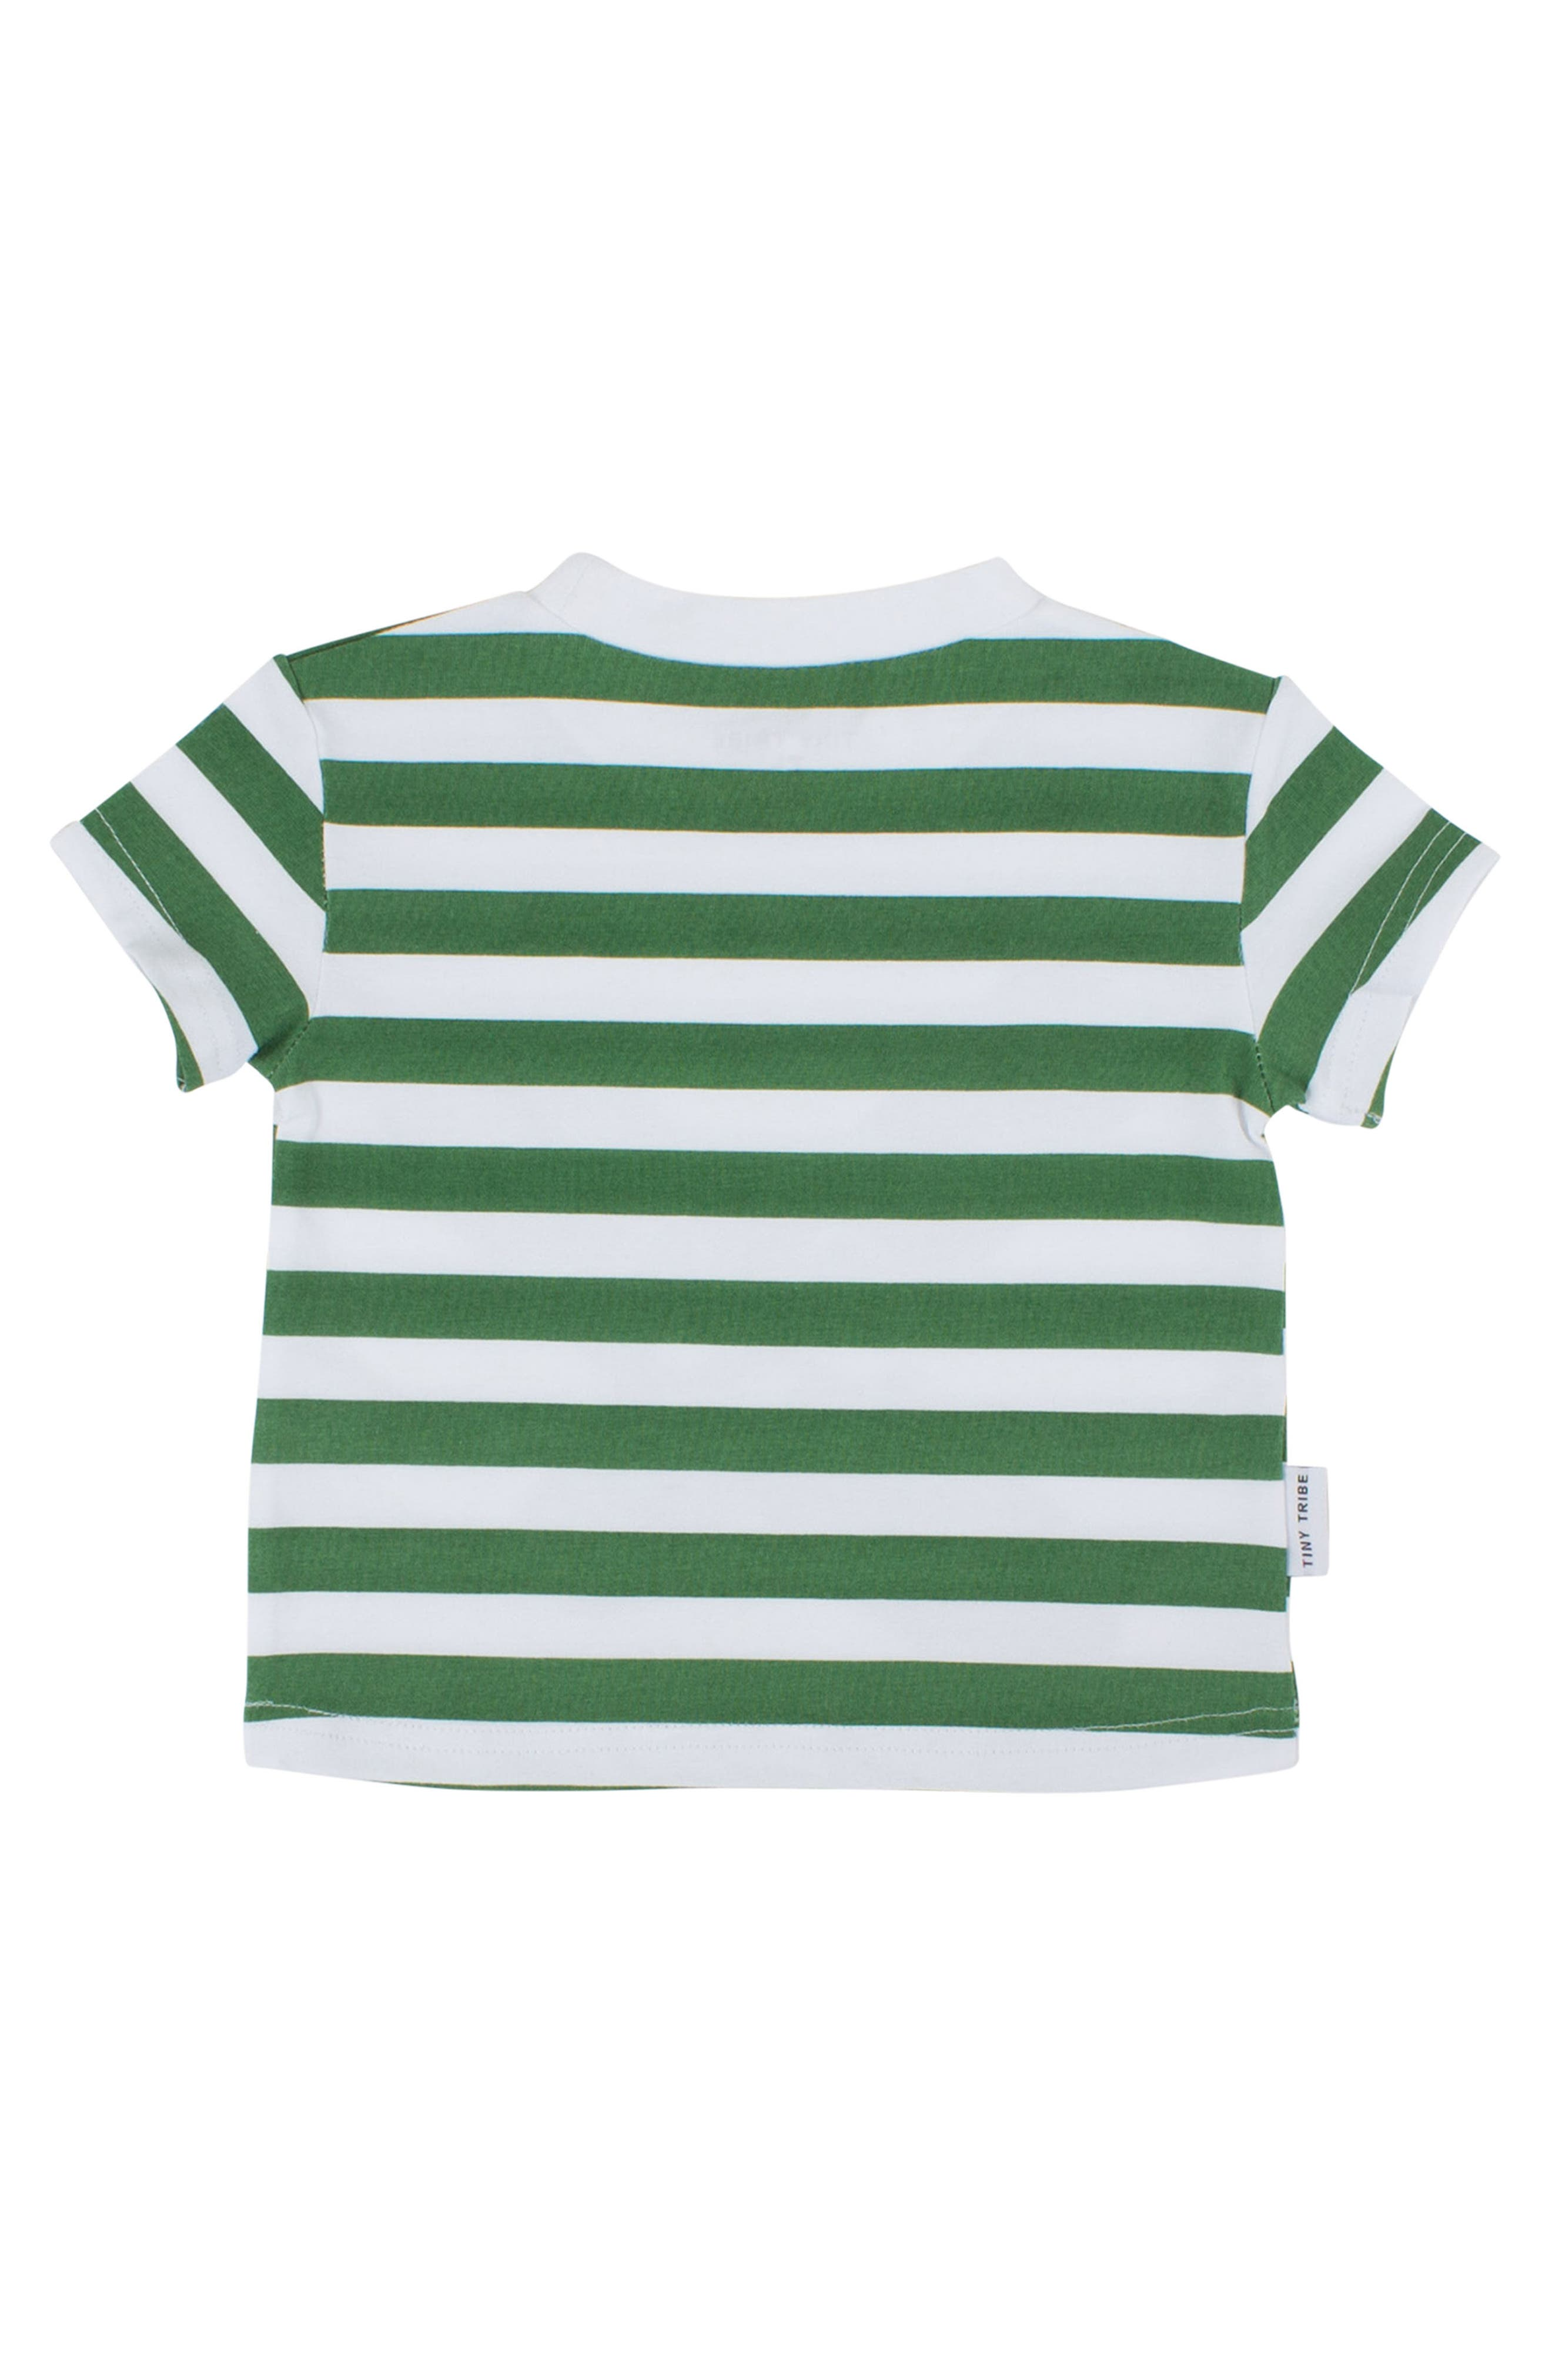 Alternate Image 2  - Tiny Tribe Face Paint Stripe T-Shirt (Toddler Boys & Little Boys)